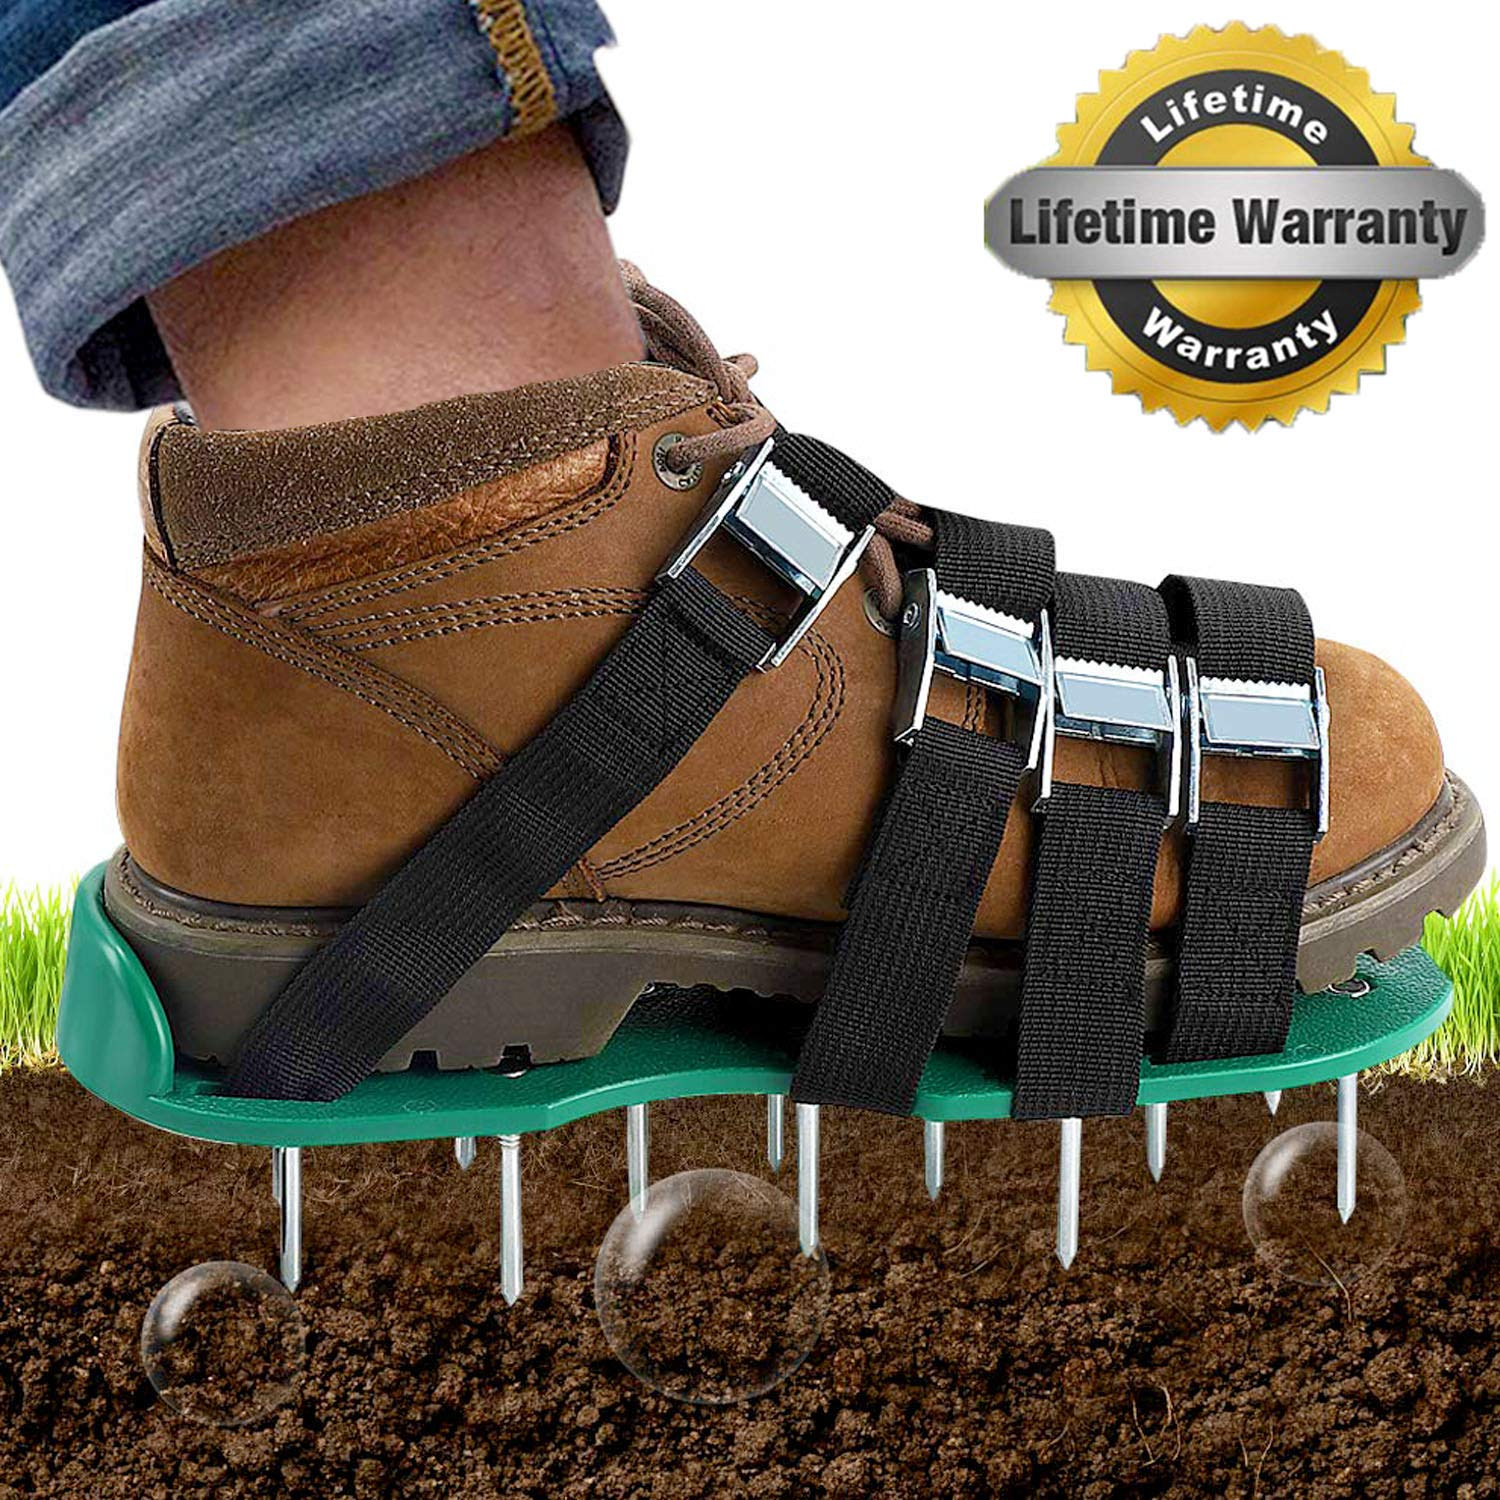 Dripex Lawn Aerator Spike Shoes -with 26 Spikes and 4 Adjustable Straps Heavy Duty Lawn Aerator Sandal Includes Garden Work Gloves for Aerating Your Lawn or Yard by Dripex